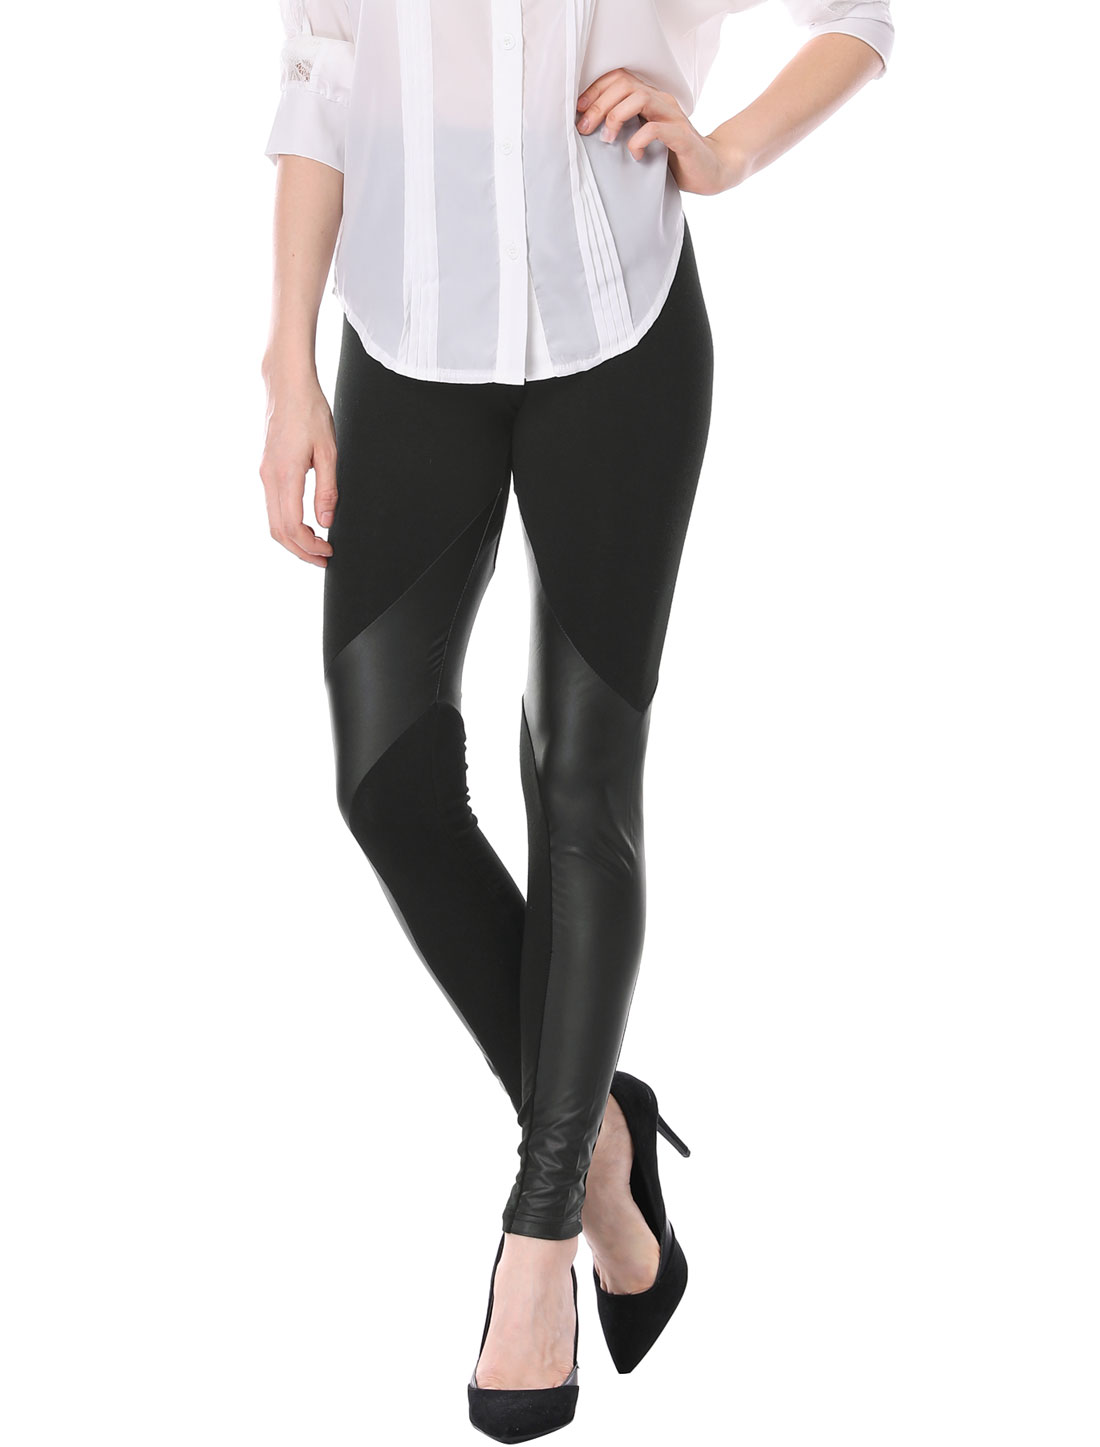 Lady Black Elastic Waist Faux Leather Splice Design Stretch Skinny Slim Leggings L